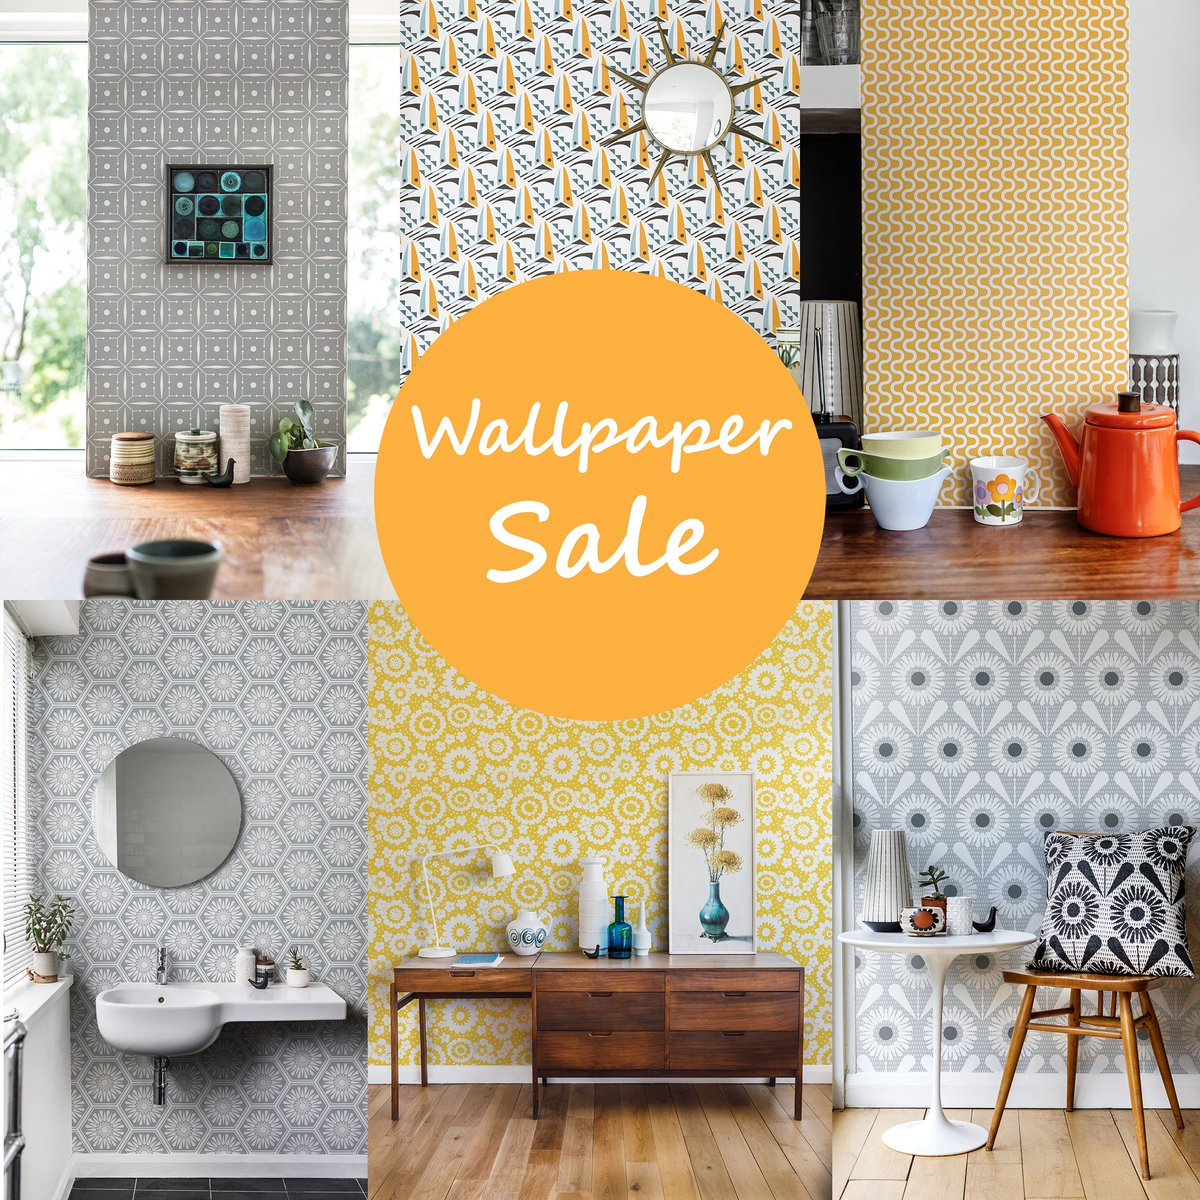 Wallpaperdirect Voucher Codes Shop Kylie Minogue wallpaper from the brand new Kylie at Home collection from official stockists I Source · Layla Faye ...